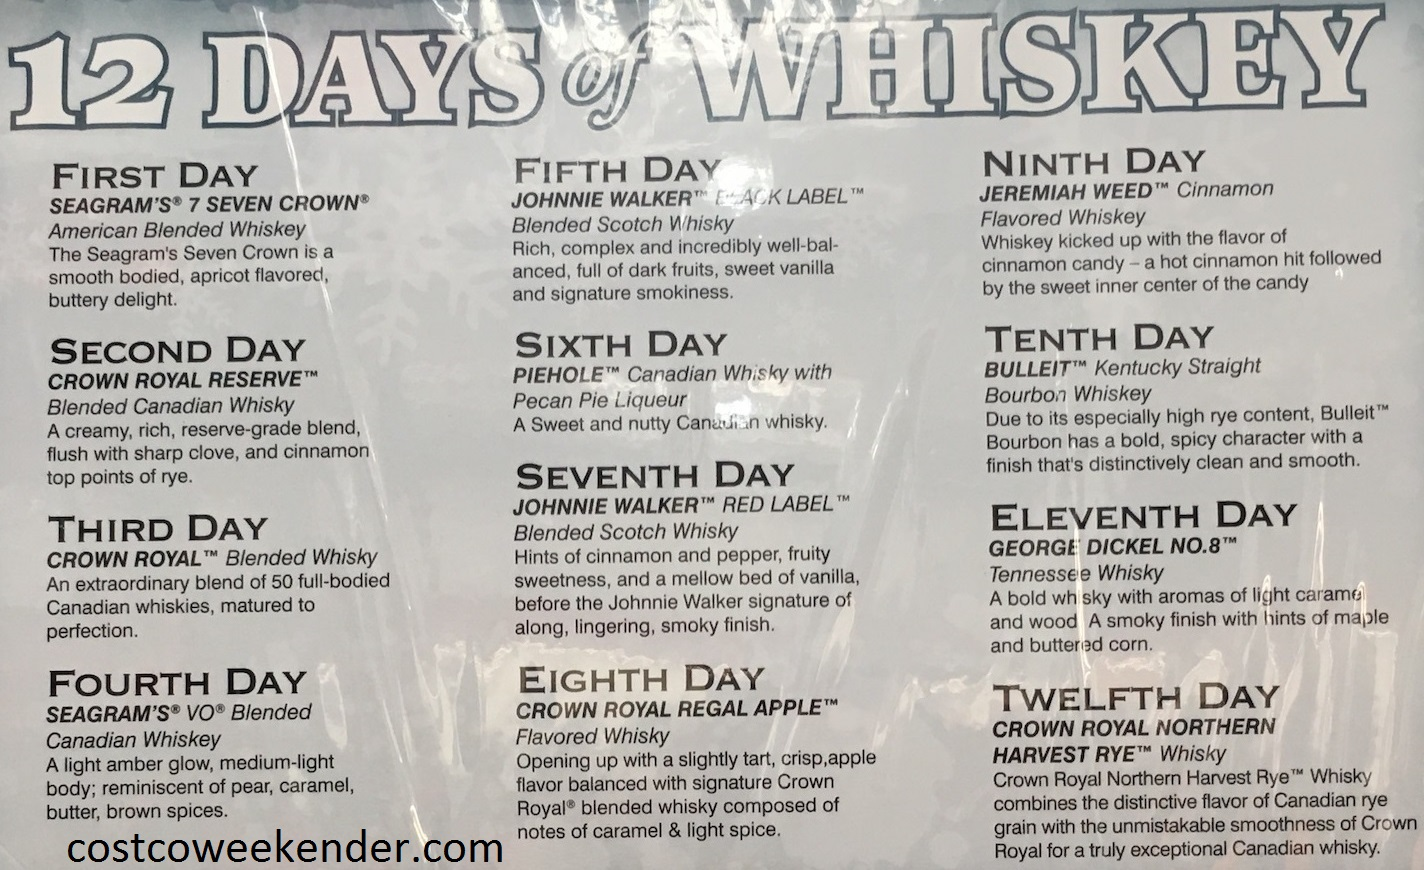 The 12 Days of Whiskey Variety Pack